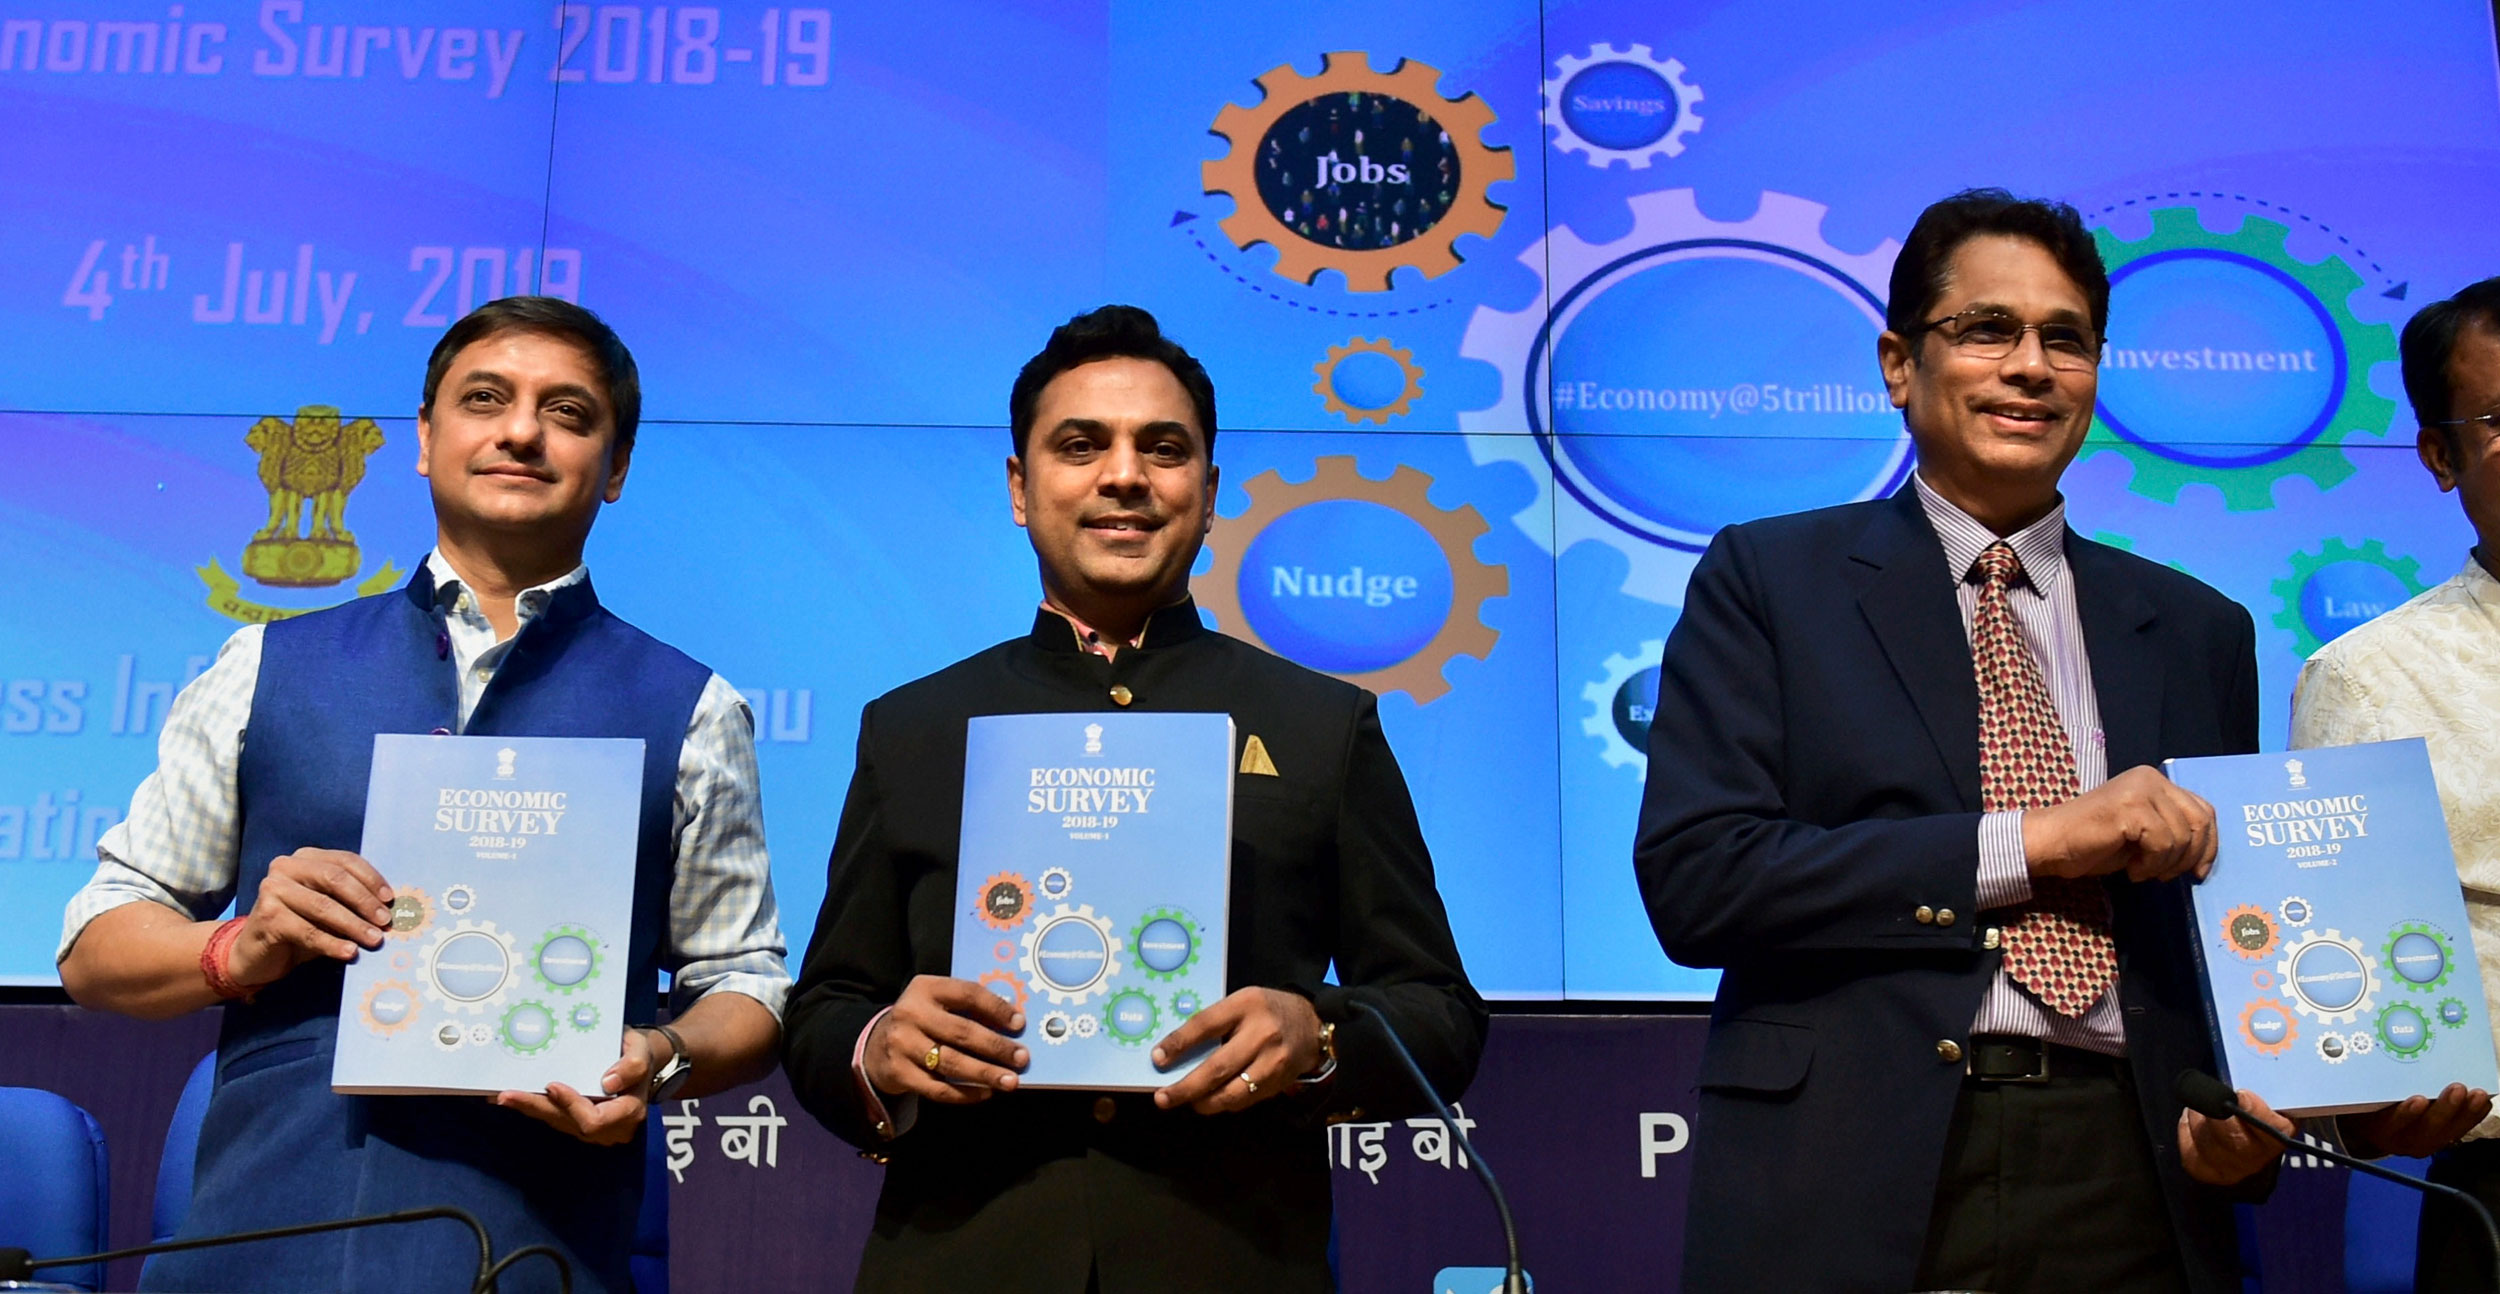 Chief economic adviser K.V. Subramanian, principal economic adviser to the Finance ministry Sanjeev Sanyal and Press Information Bureau principal director-general Sitanshu Ranjan Kar hold copies of Economic Survey 2018-19 during a press conference,  in New Delhi, on July 04, 2019.